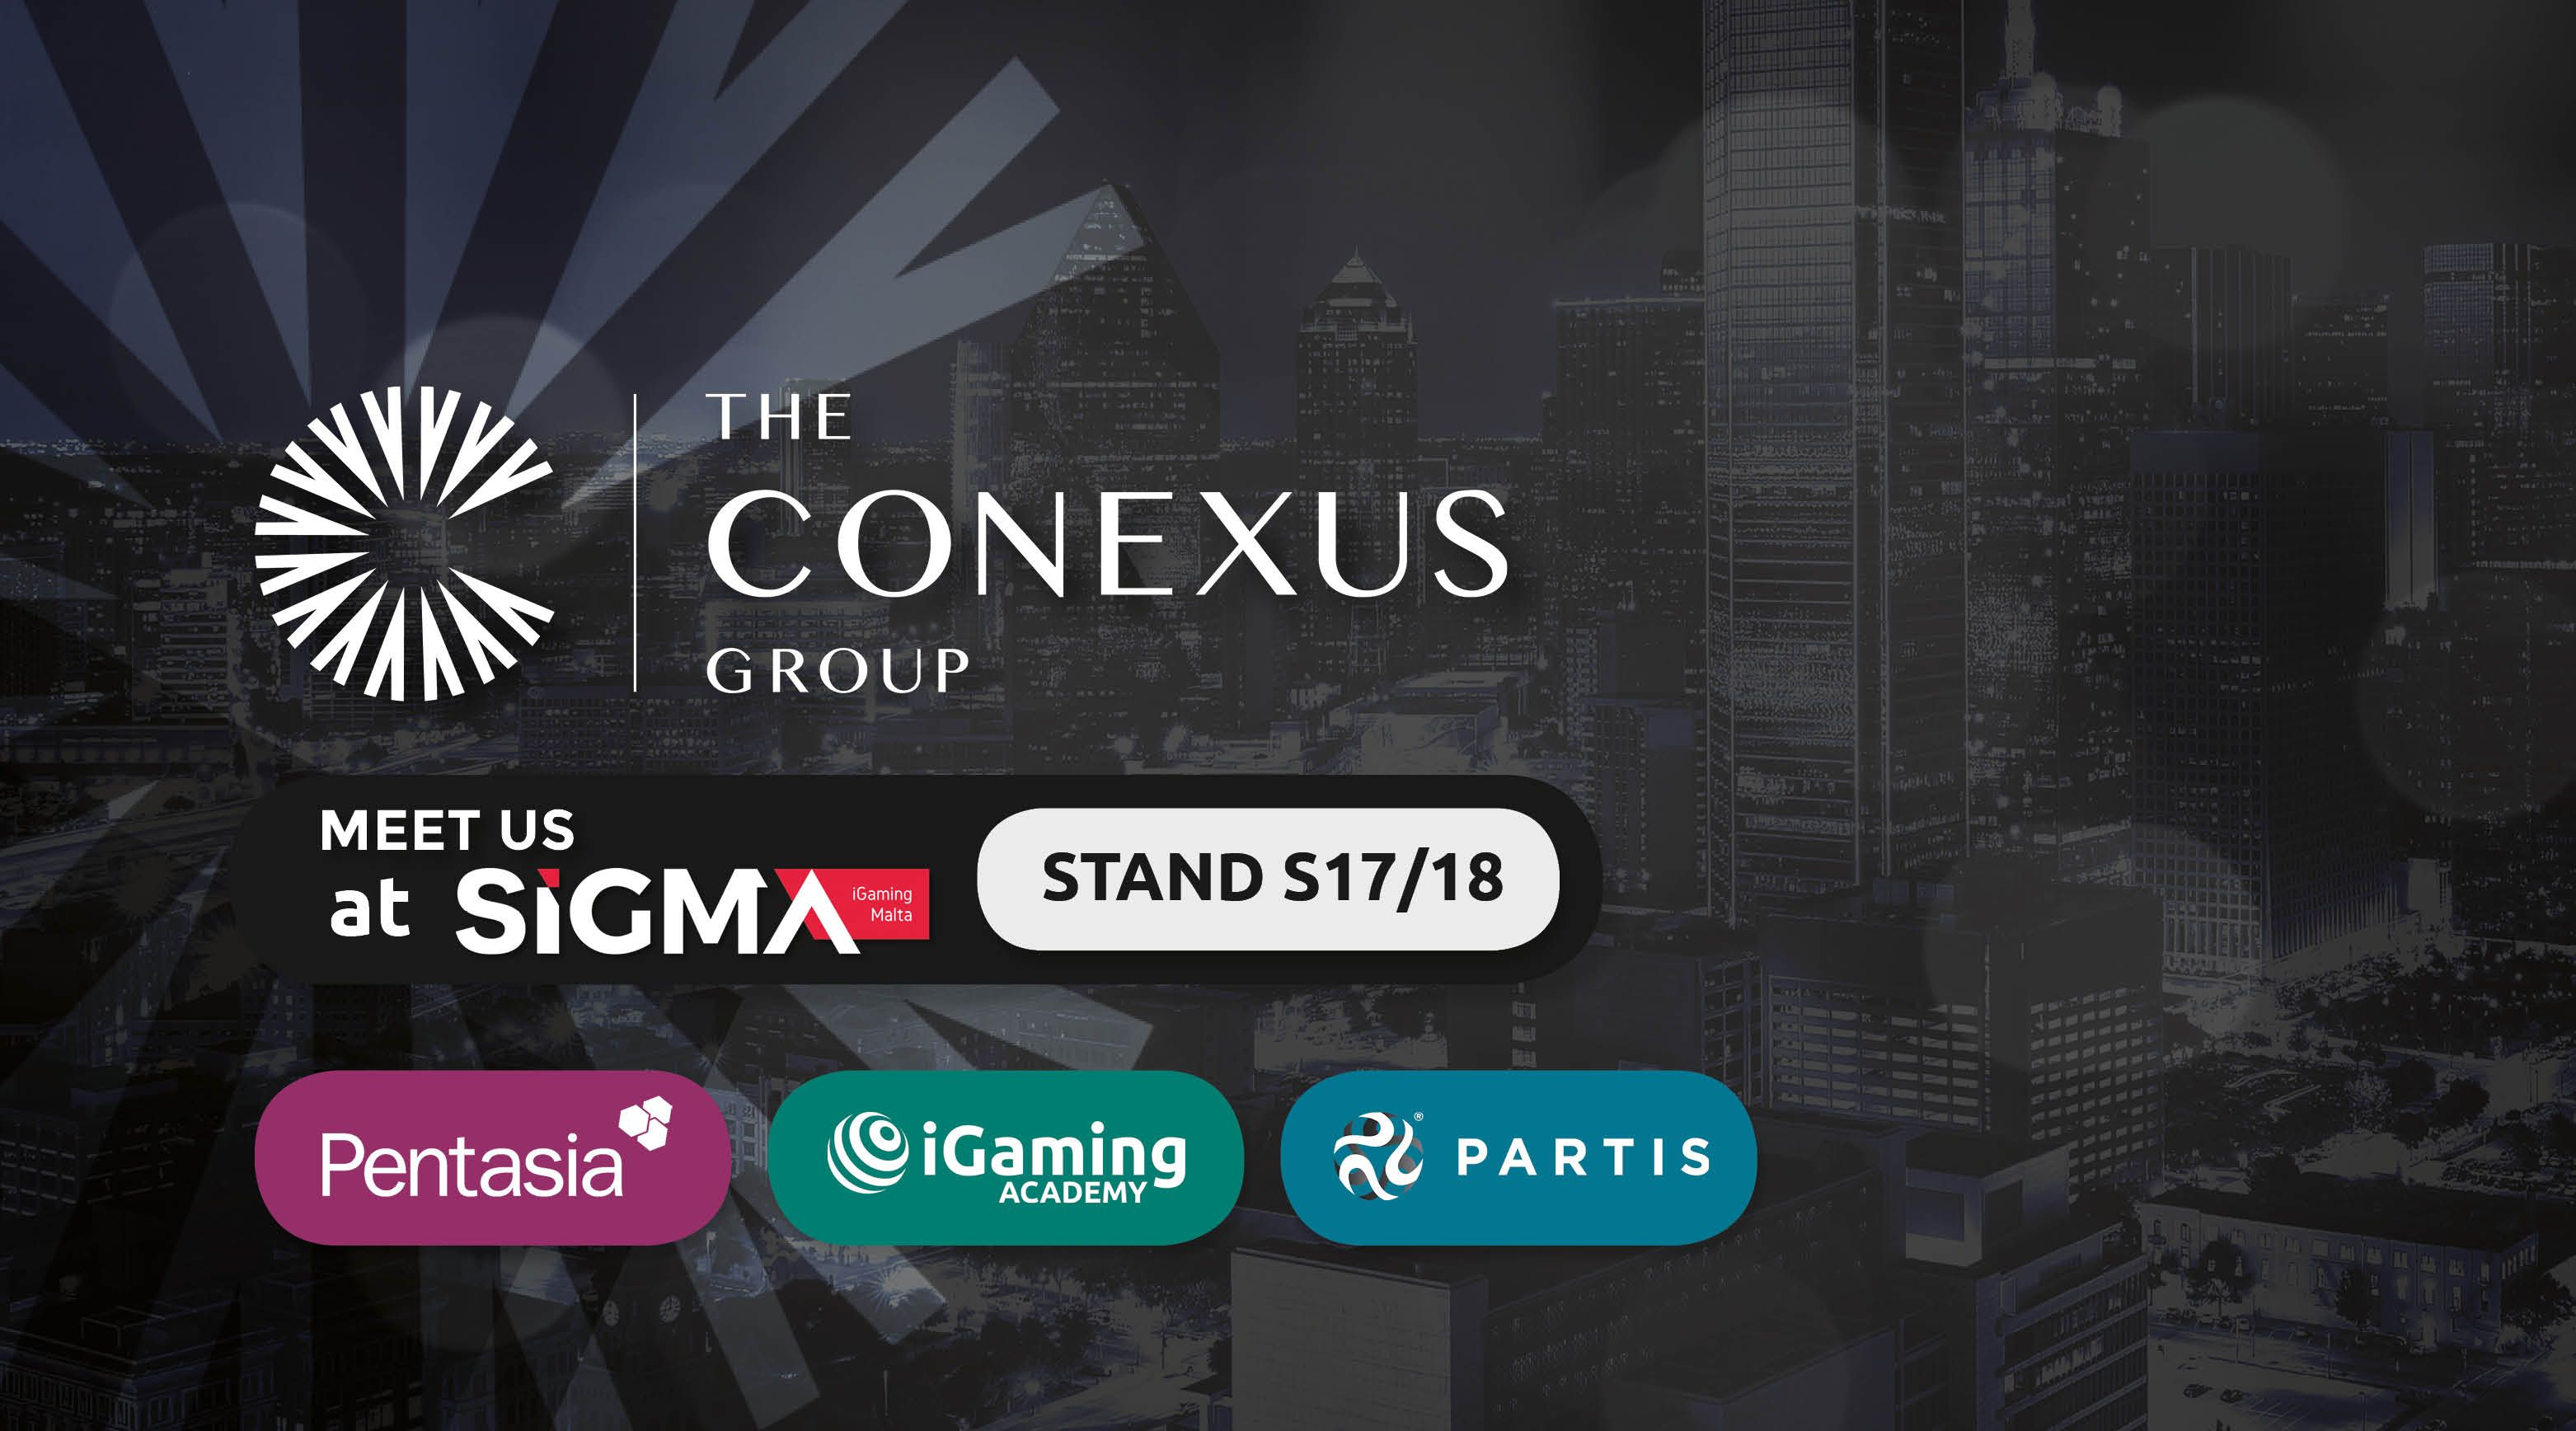 The Conexus Group at SiGMA 2019: Meet Pentasia, iGaming Academy & Partis At Stand S17